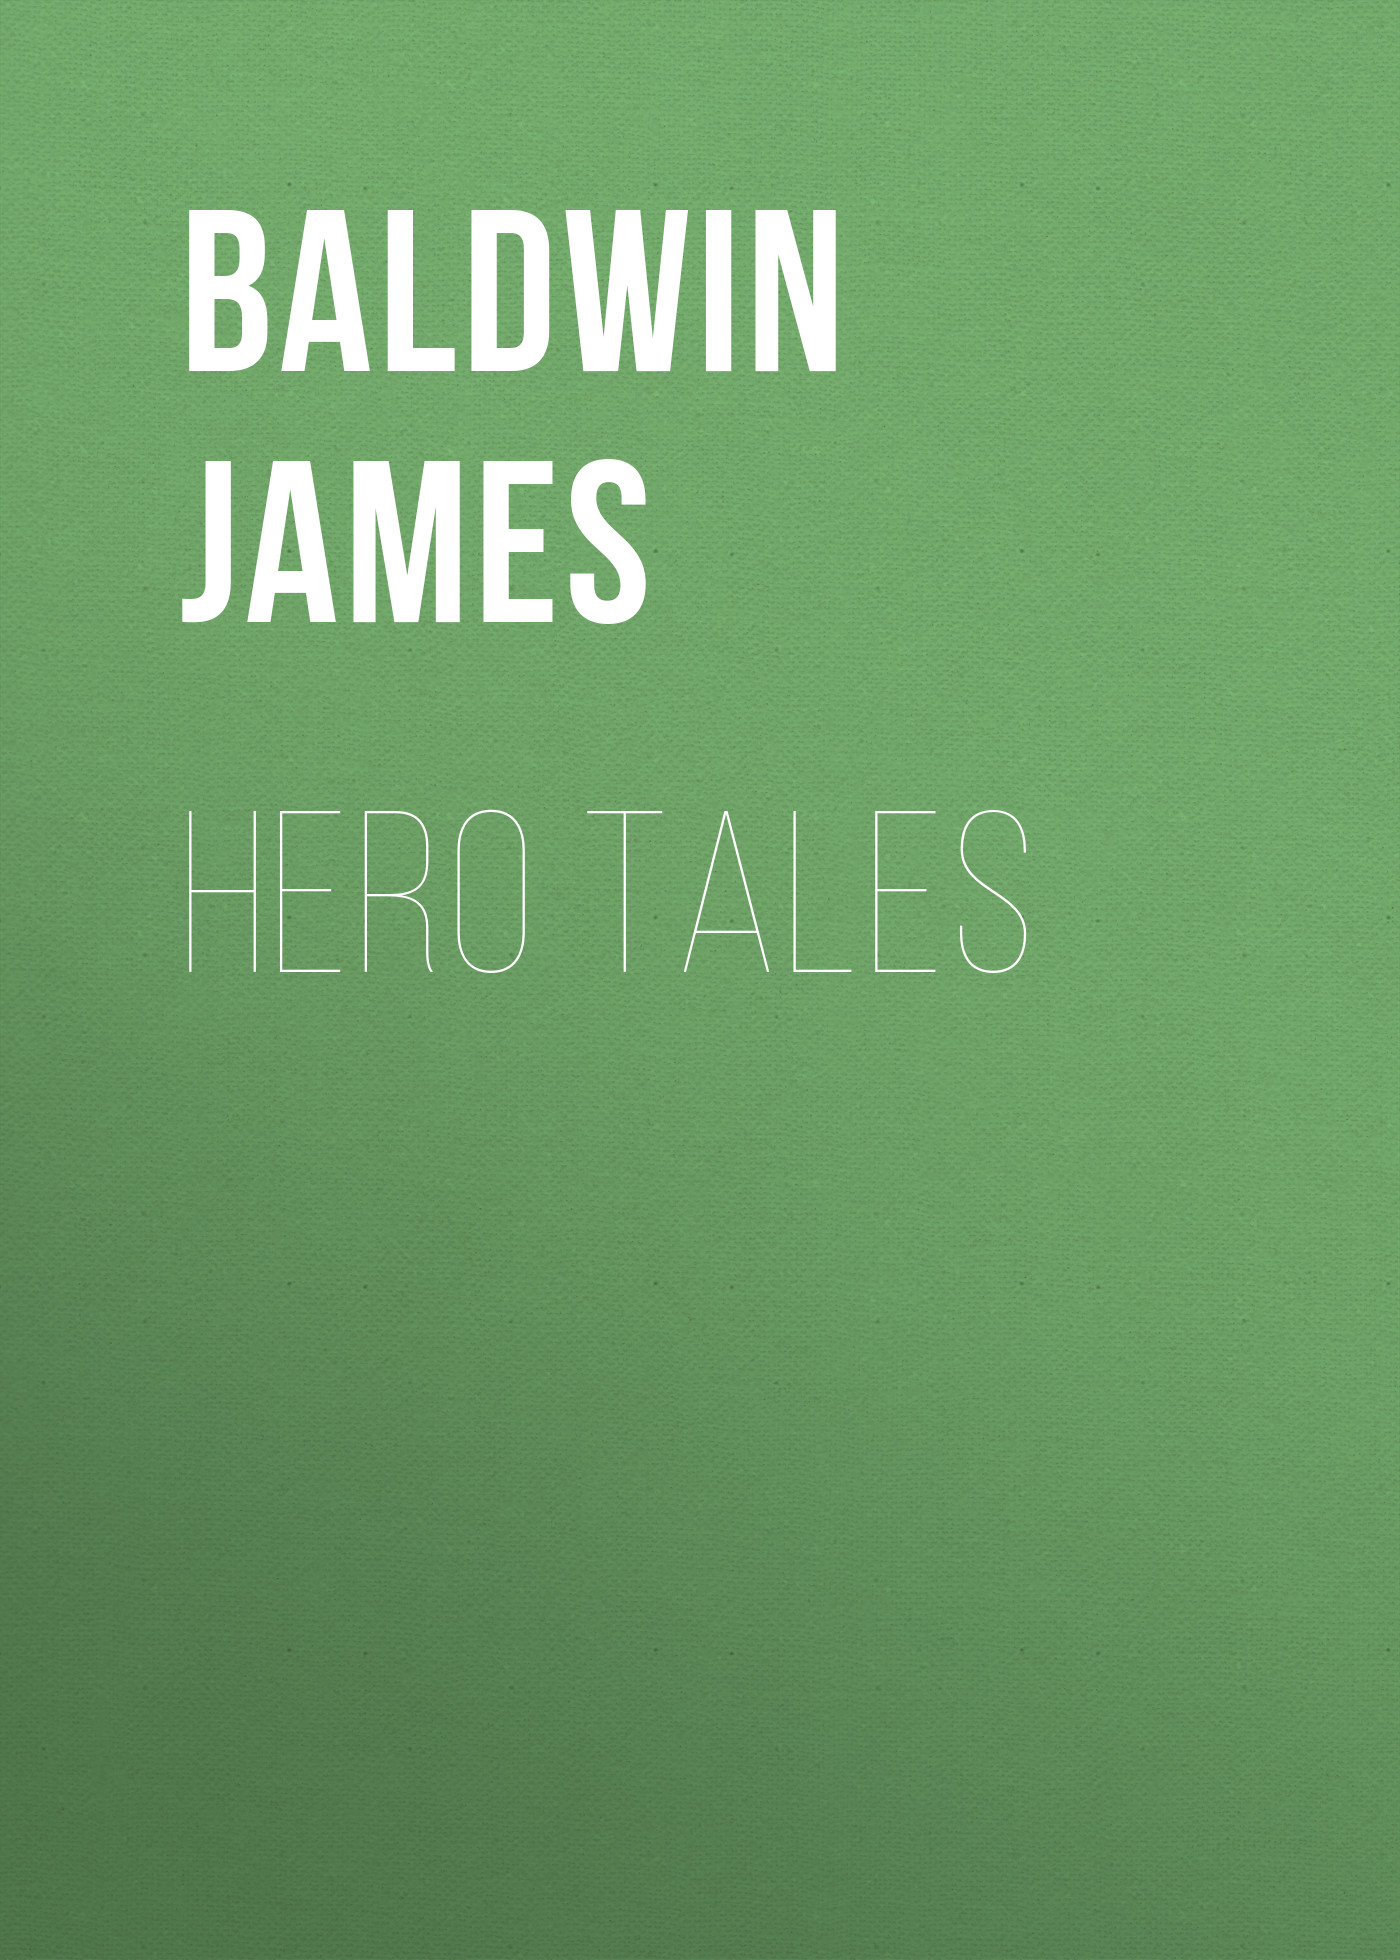 где купить Baldwin James Hero Tales дешево